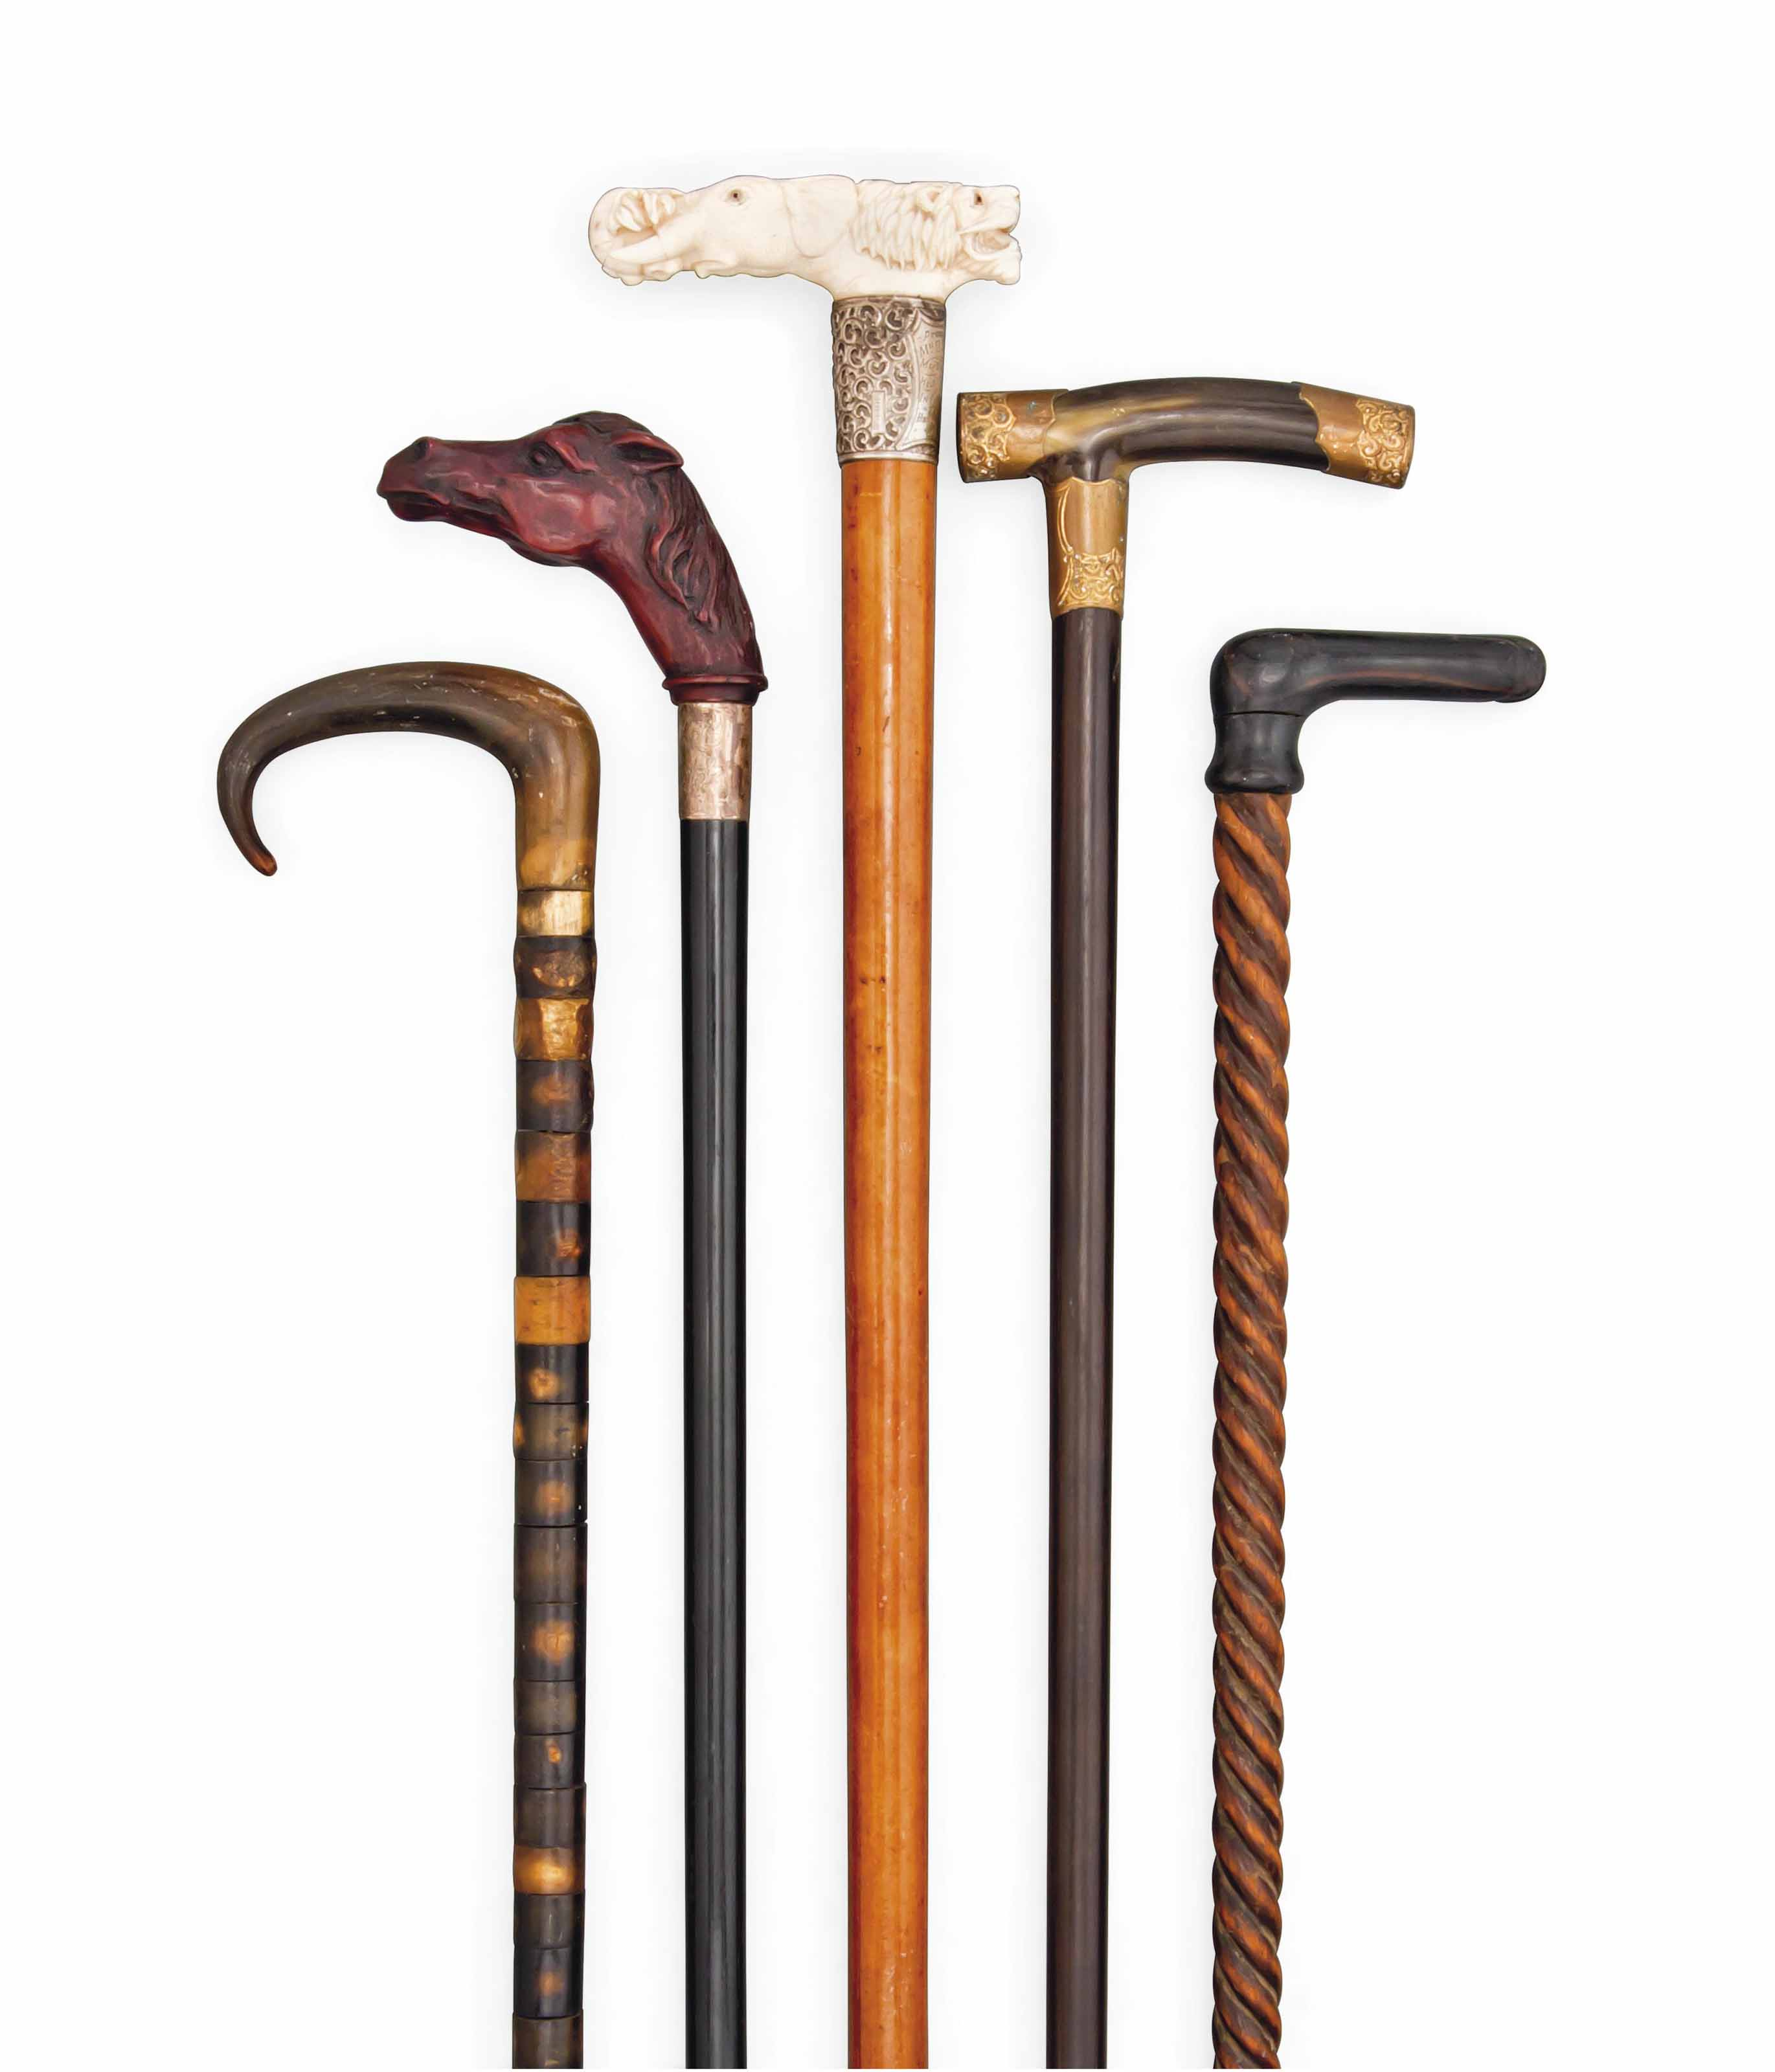 FIVE NOVELTY WALKING STICKS